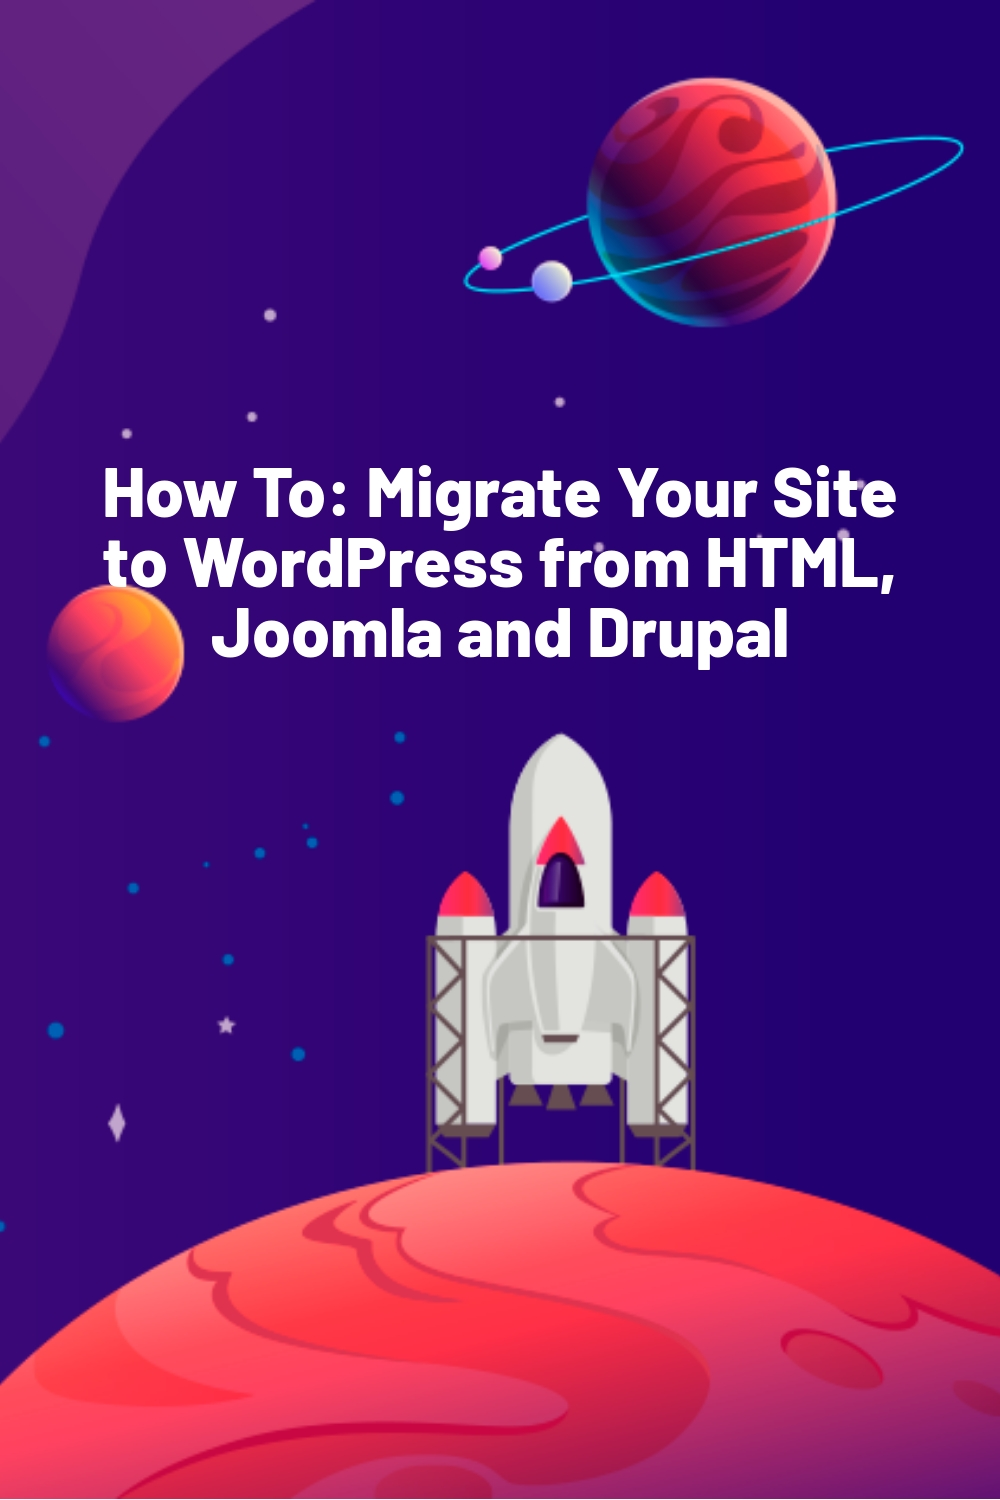 How To: Migrate Your Site to WordPress from HTML, Joomla and Drupal